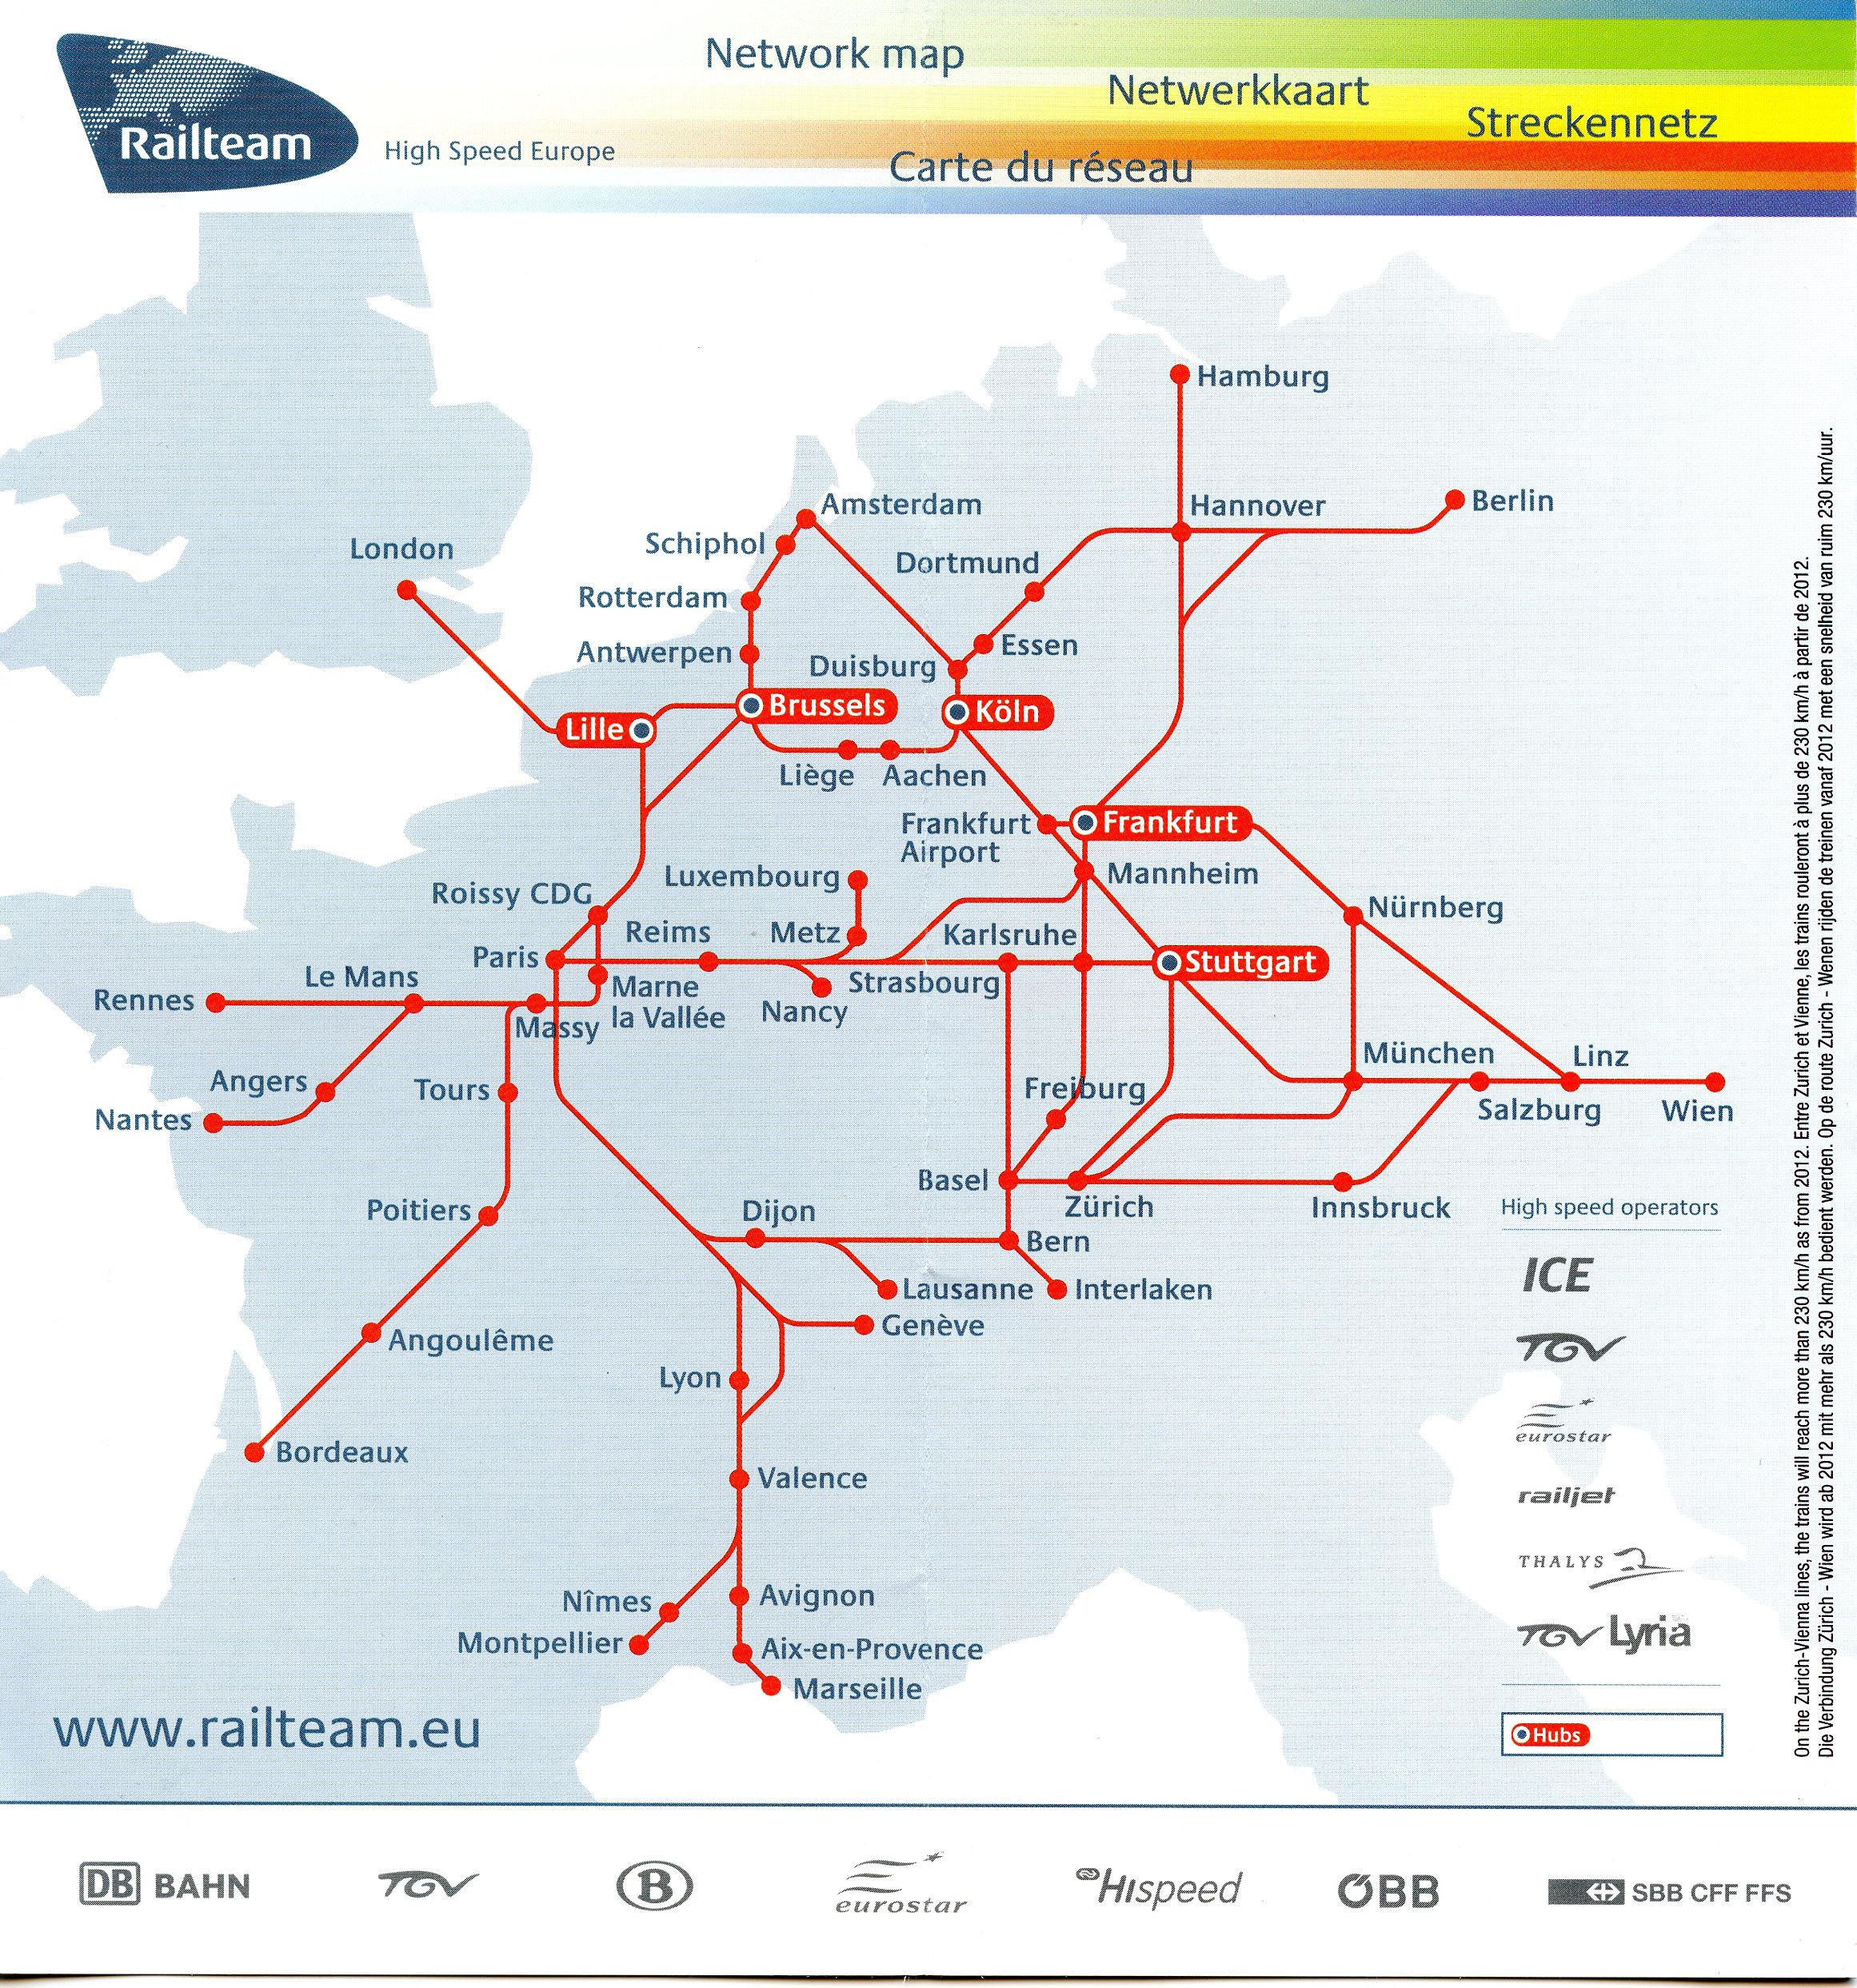 Paris On Europe Map.Railteam High Speed Europe